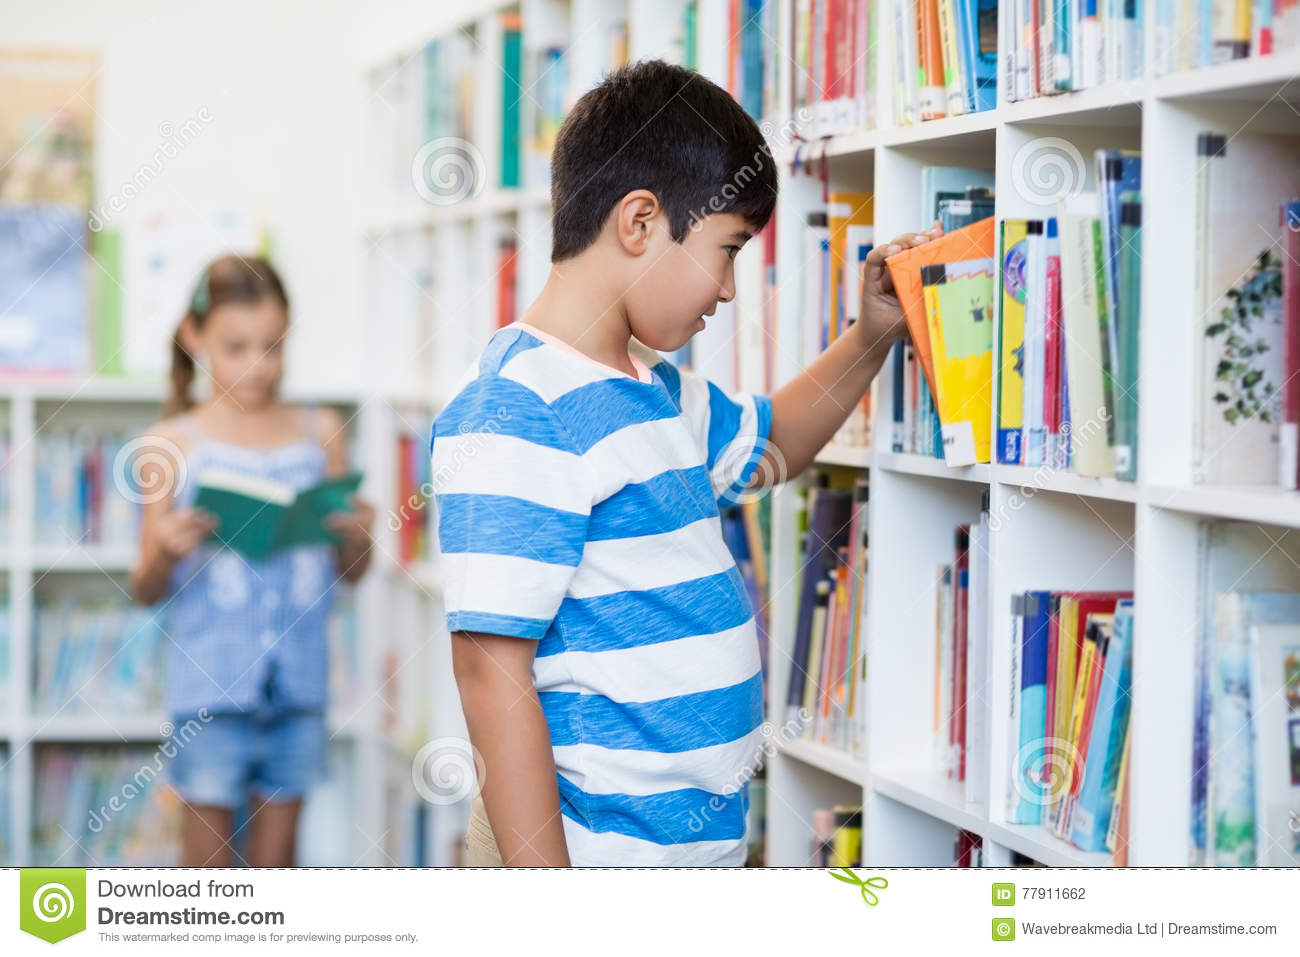 Boy Taking A Book From Bookshelf In Library